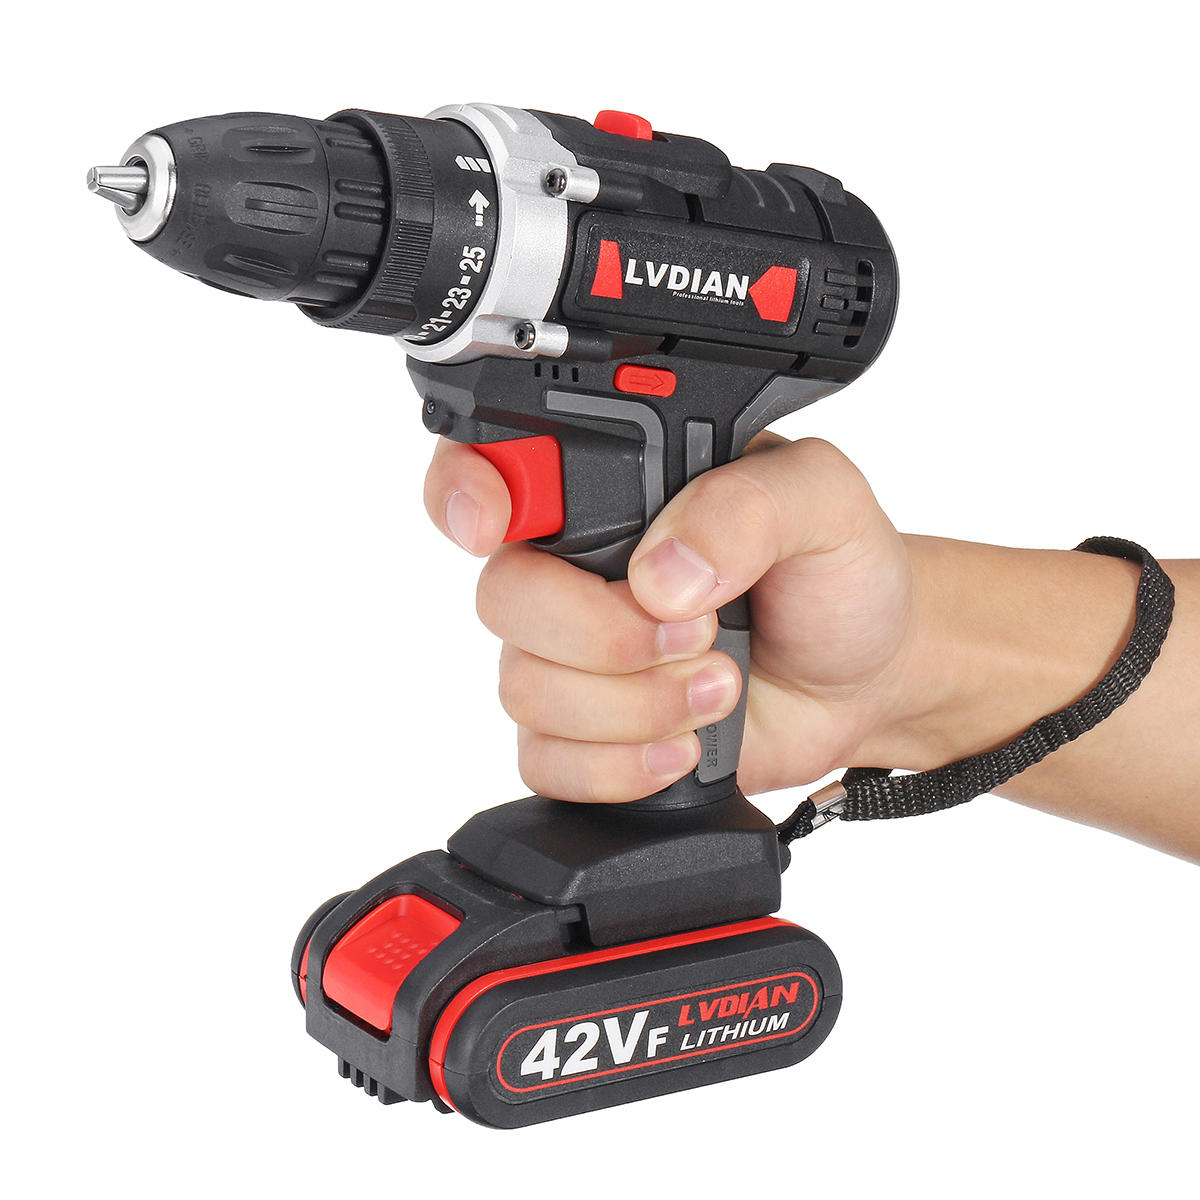 42VF Li-Ion Battery Cordless Rechargeable Electric Impact Drill Driver Screwdriver LED Light - 12